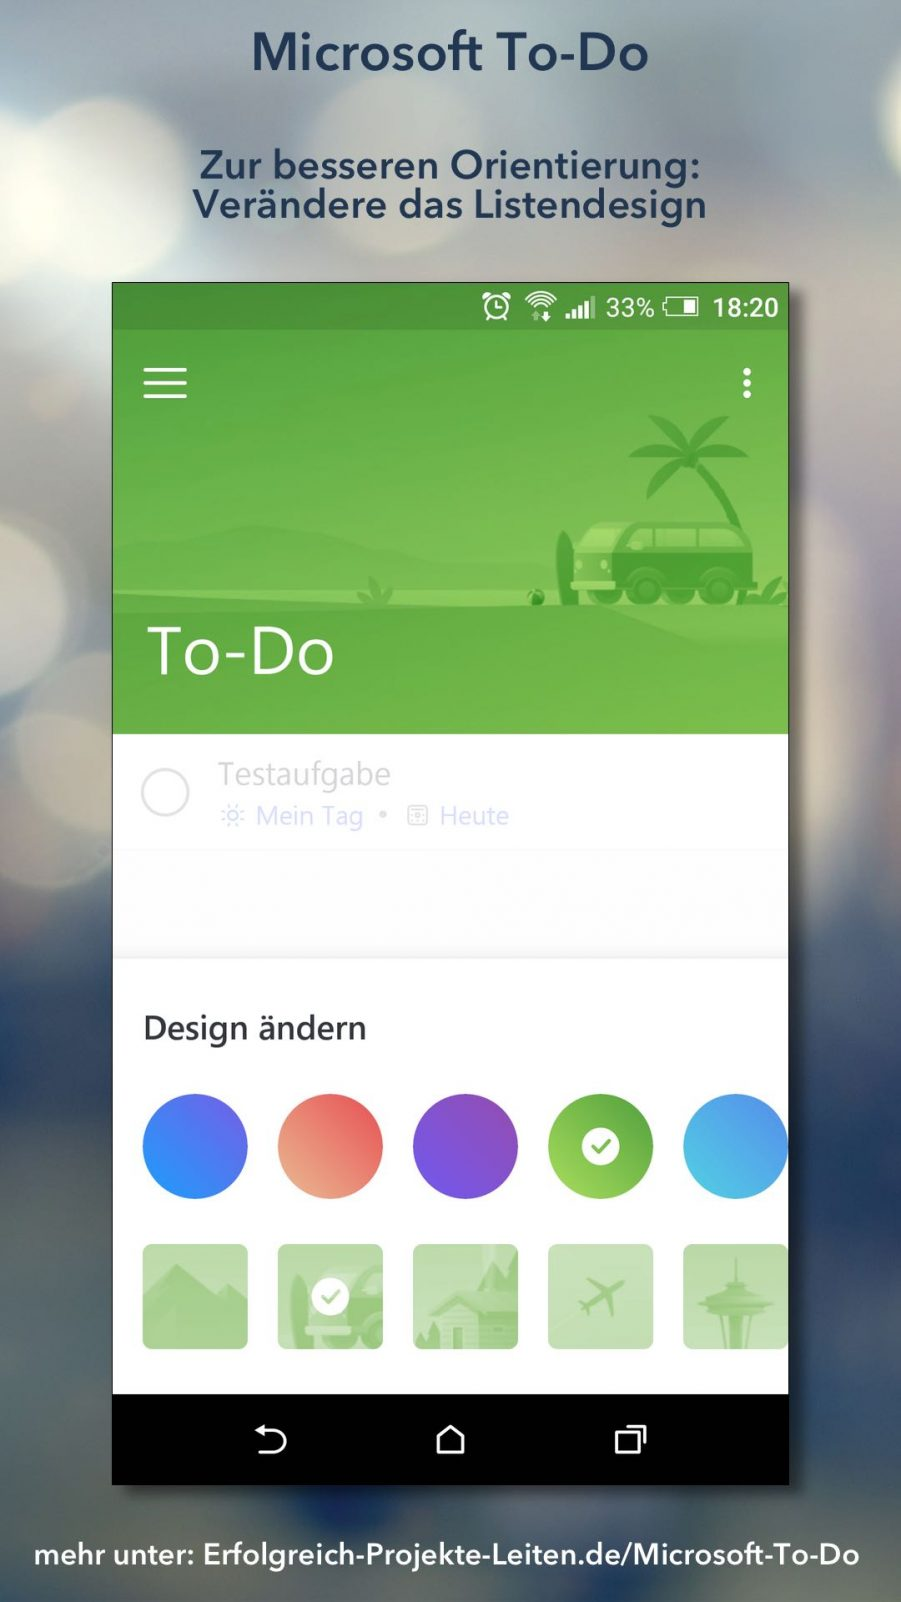 Microsoft To-Do - Listendesign ändern